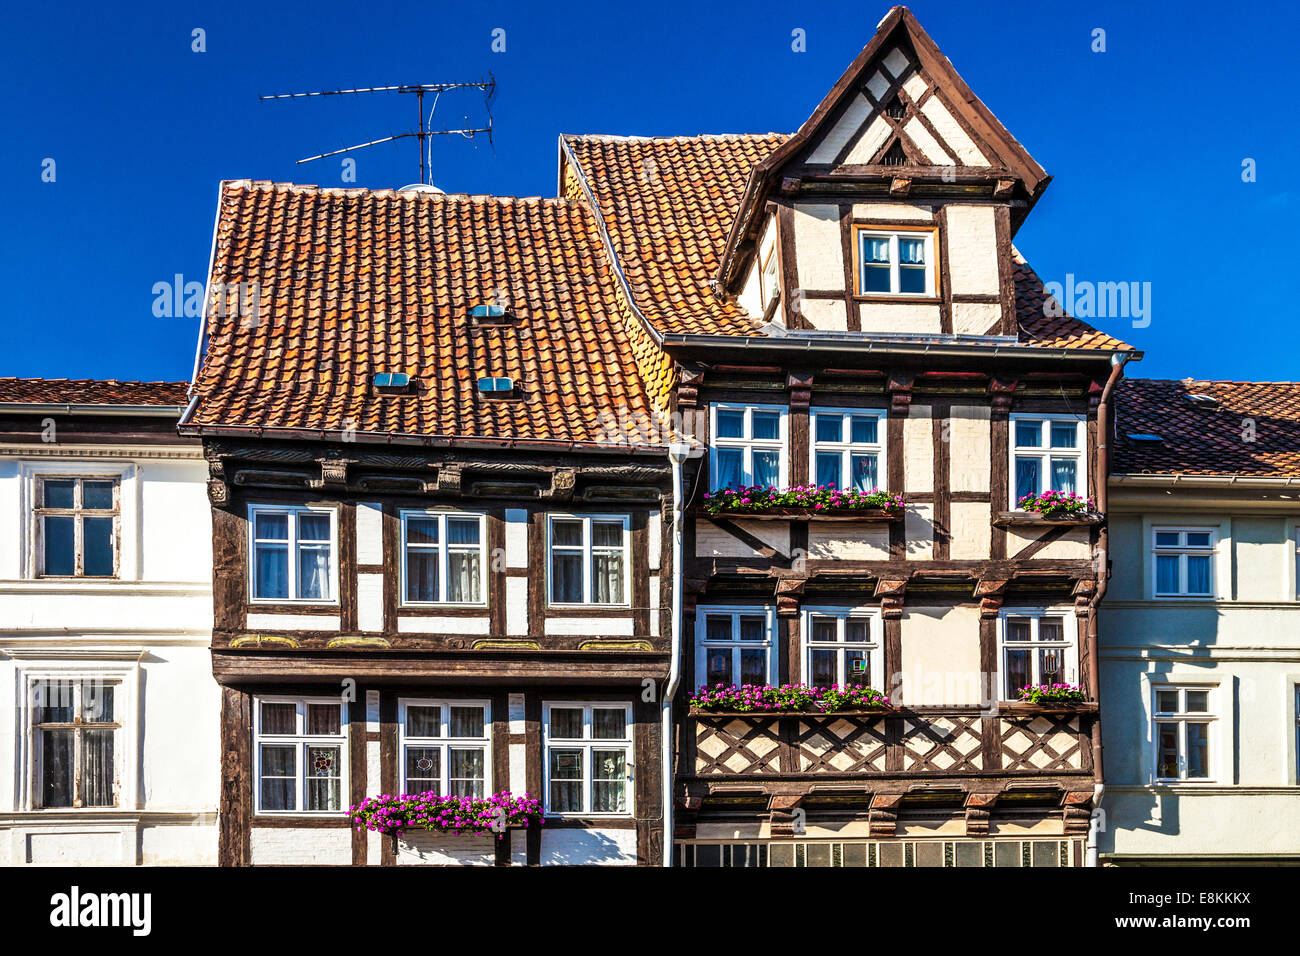 Half-timbered medieval houses in the UNESCO World Heritage town of Quedlinburg, Germany. - Stock Image